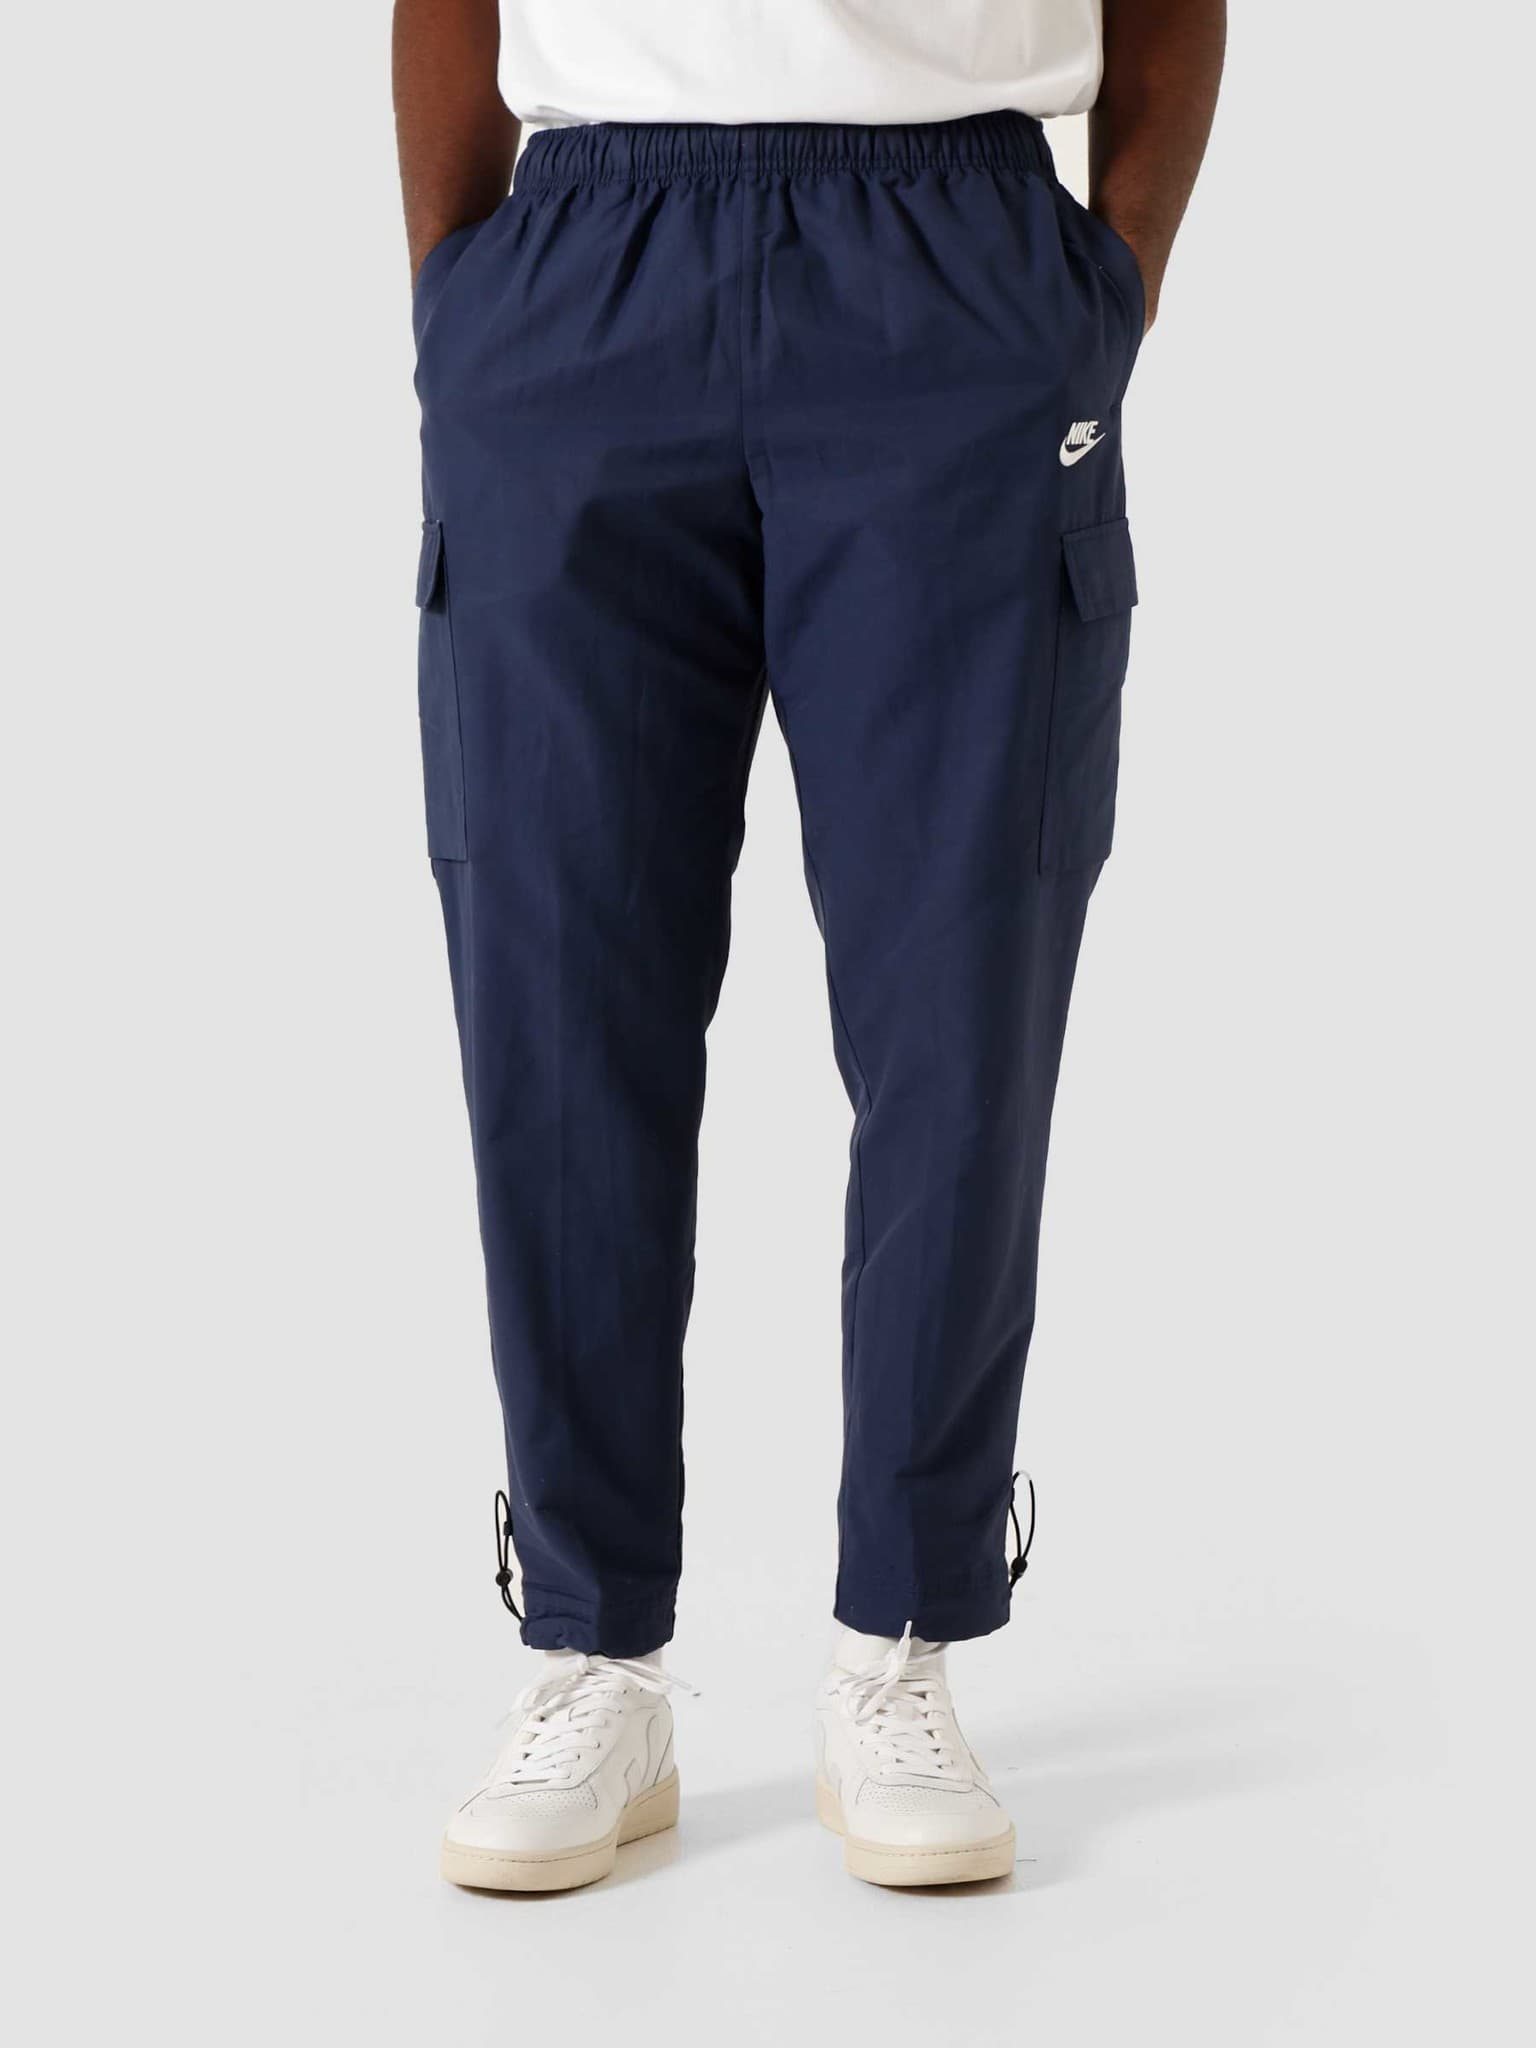 NSW Pant Woven Players Midnight Navy White CU4325-410